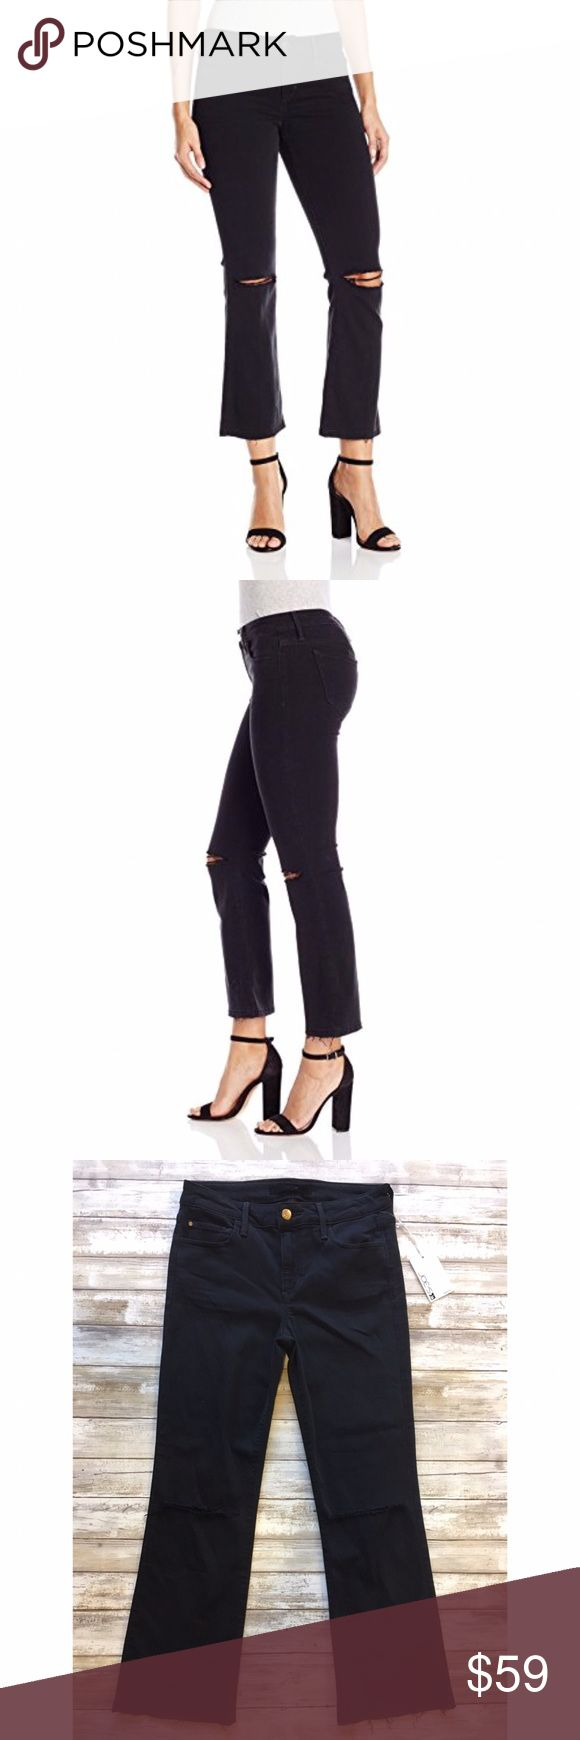 """New JOE'S Flawles OLIVIA Crop Flare Emilie 84325 Brand new with tags You'll look and feel amazing in these ultra-flattering mid-rise jeans.  Frayed, ripped knees and ragged hems define the edgy character of trend-right cropped flare jeans cast in a cool faded-black wash. 56% Rayon / 25% Cotton / 18% Polyester / 1% Spandex Made in Mexico  Size Conversion Guide: 24=00, 25=0, 26=2, 27=4, 28=6, 29=8, 30=10, 31=10-12, 32=12   MEASUREMENTS Waist:  14"""" flat across Rise:  9"""" Inseam: 27""""   Thank You…"""